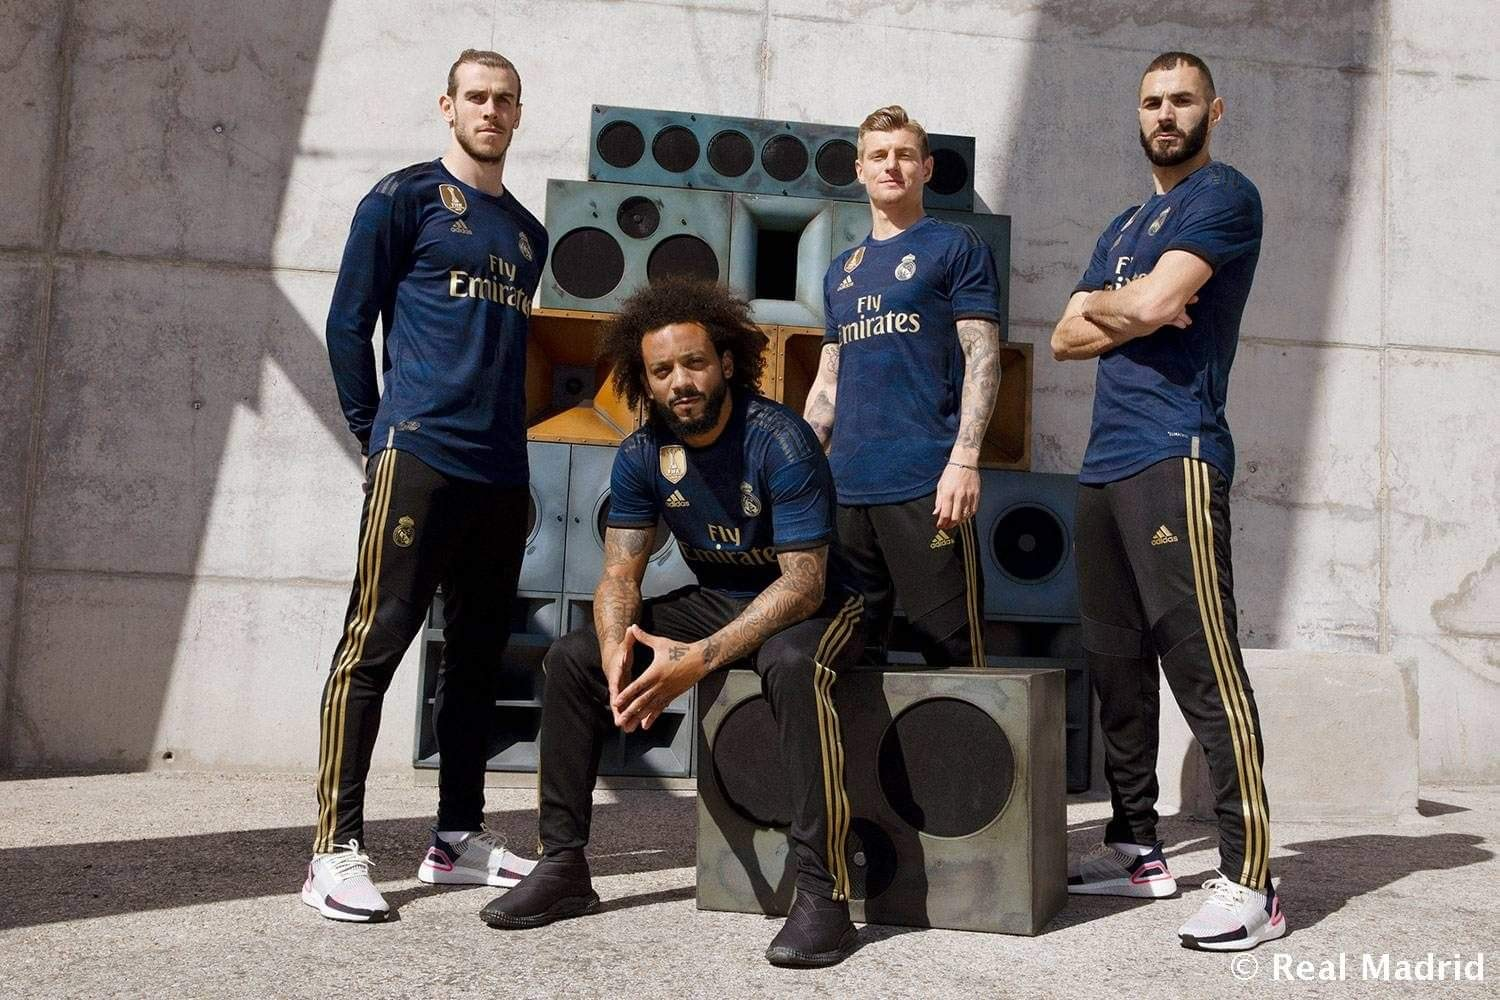 Real Madrid away kit revealed: Real Madrid give a tribute to fans with new away jersey